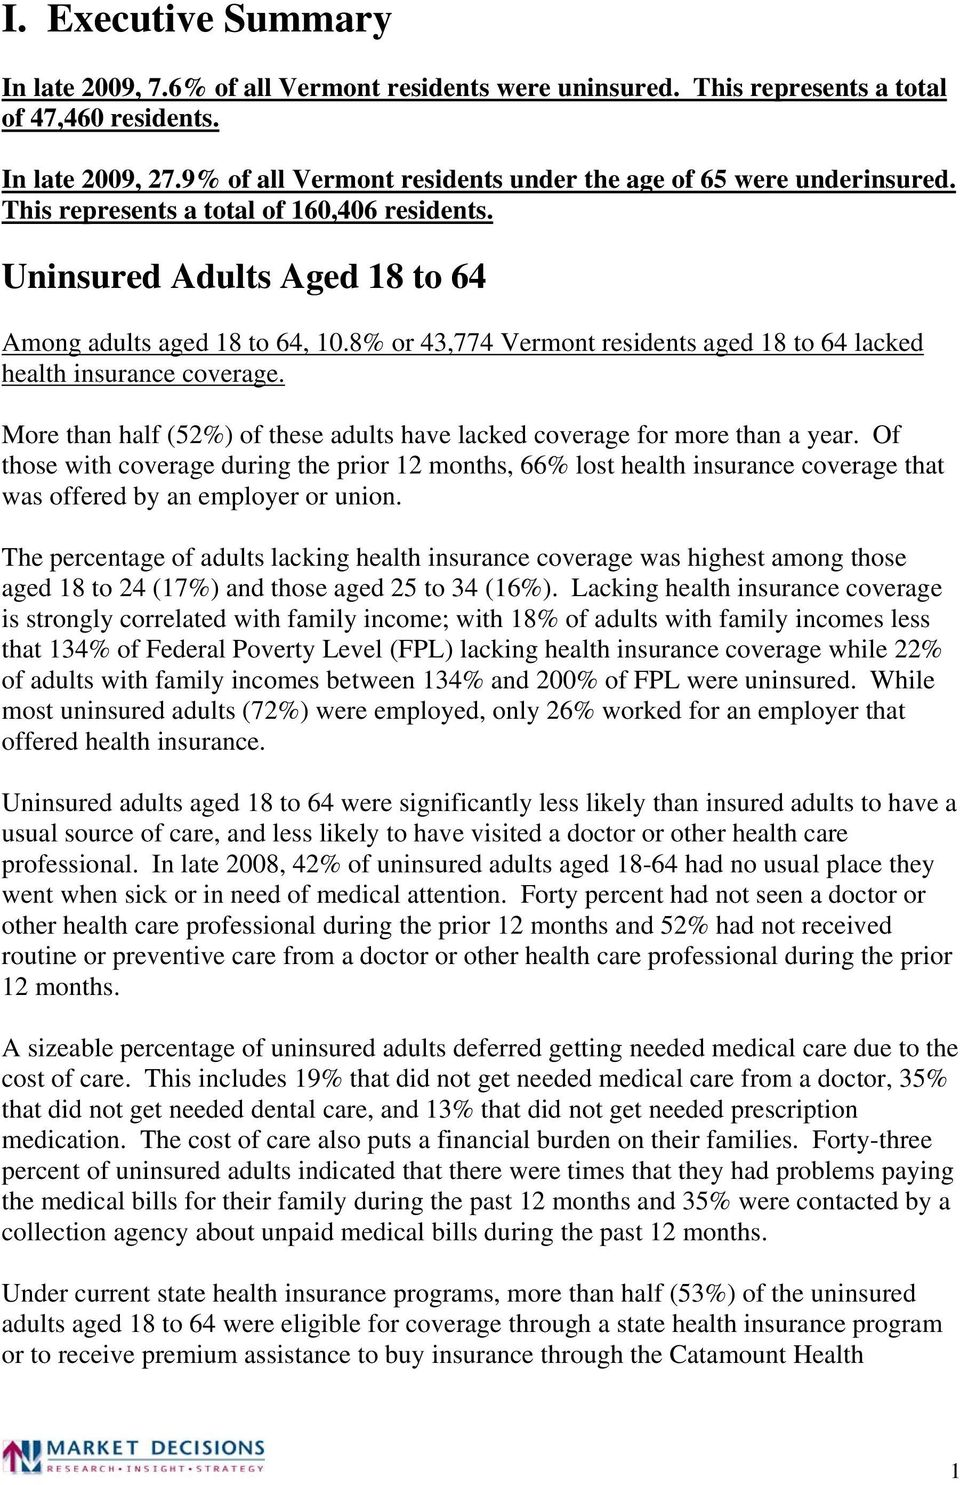 8% or 43,774 Vermont residents aged 18 to 64 lacked health insurance coverage. More than half (52%) of these adults have lacked coverage for more than a year.